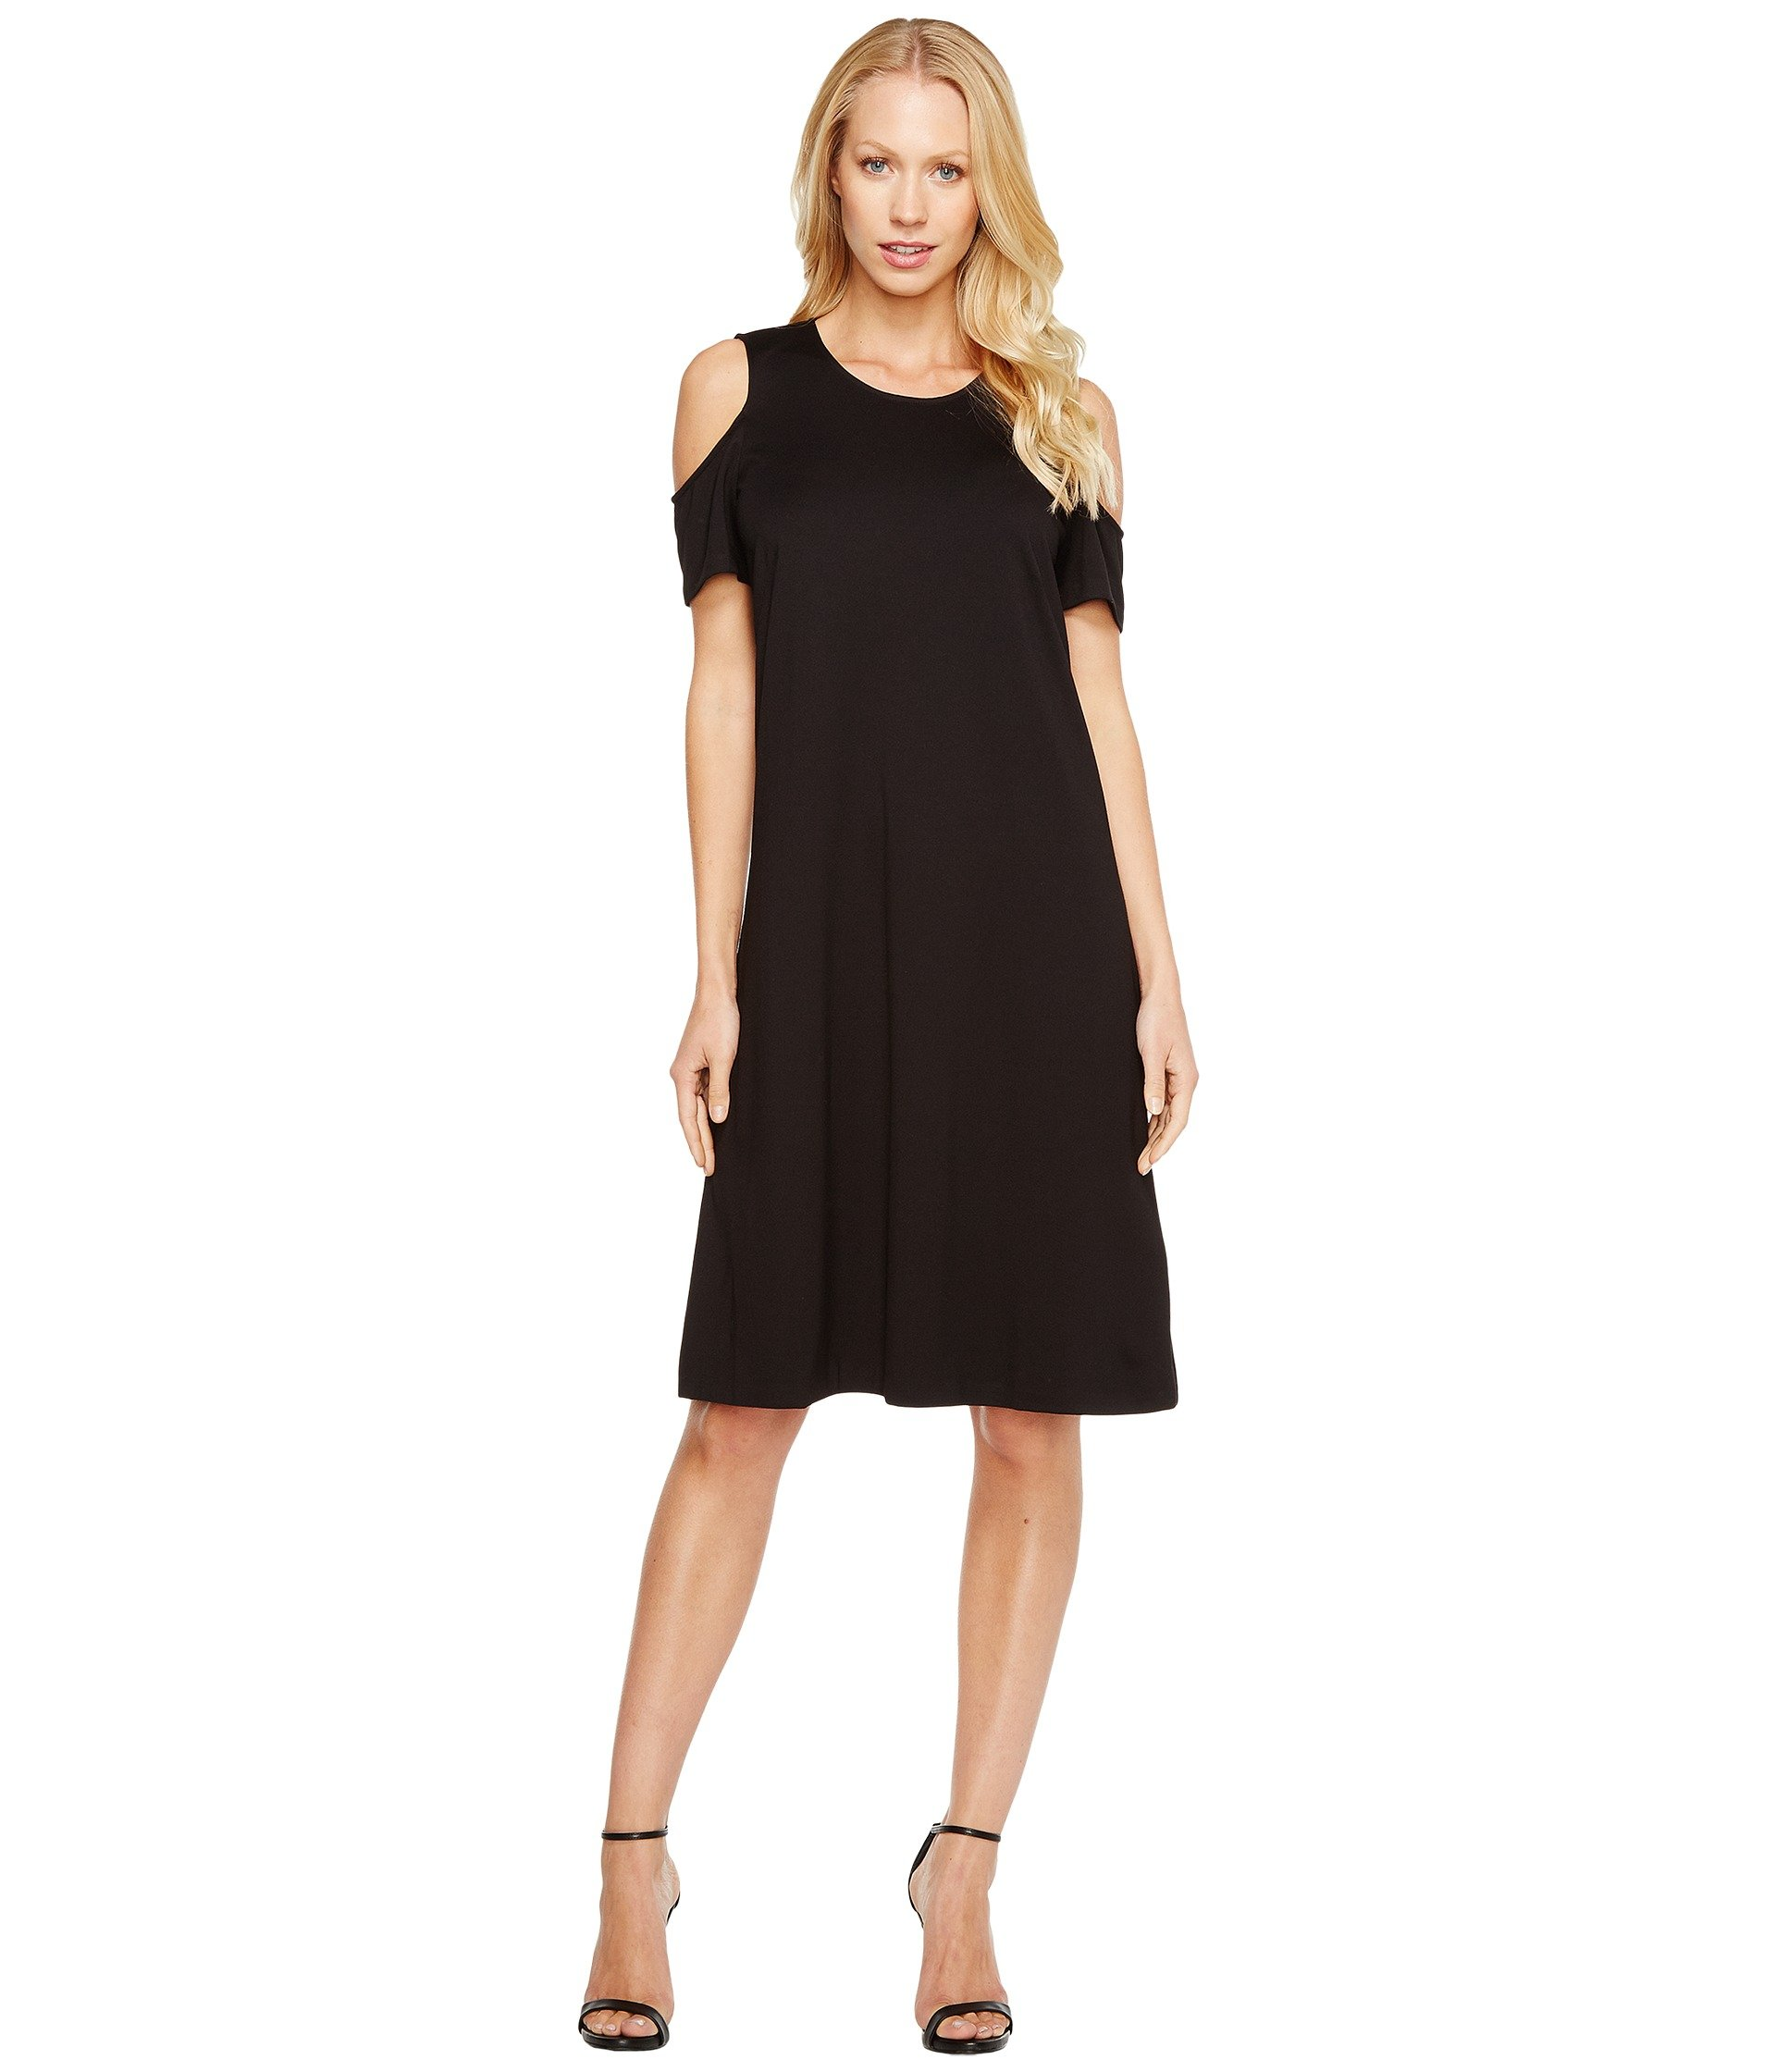 ELLEN TRACY Open Shoulder Dress, E Black